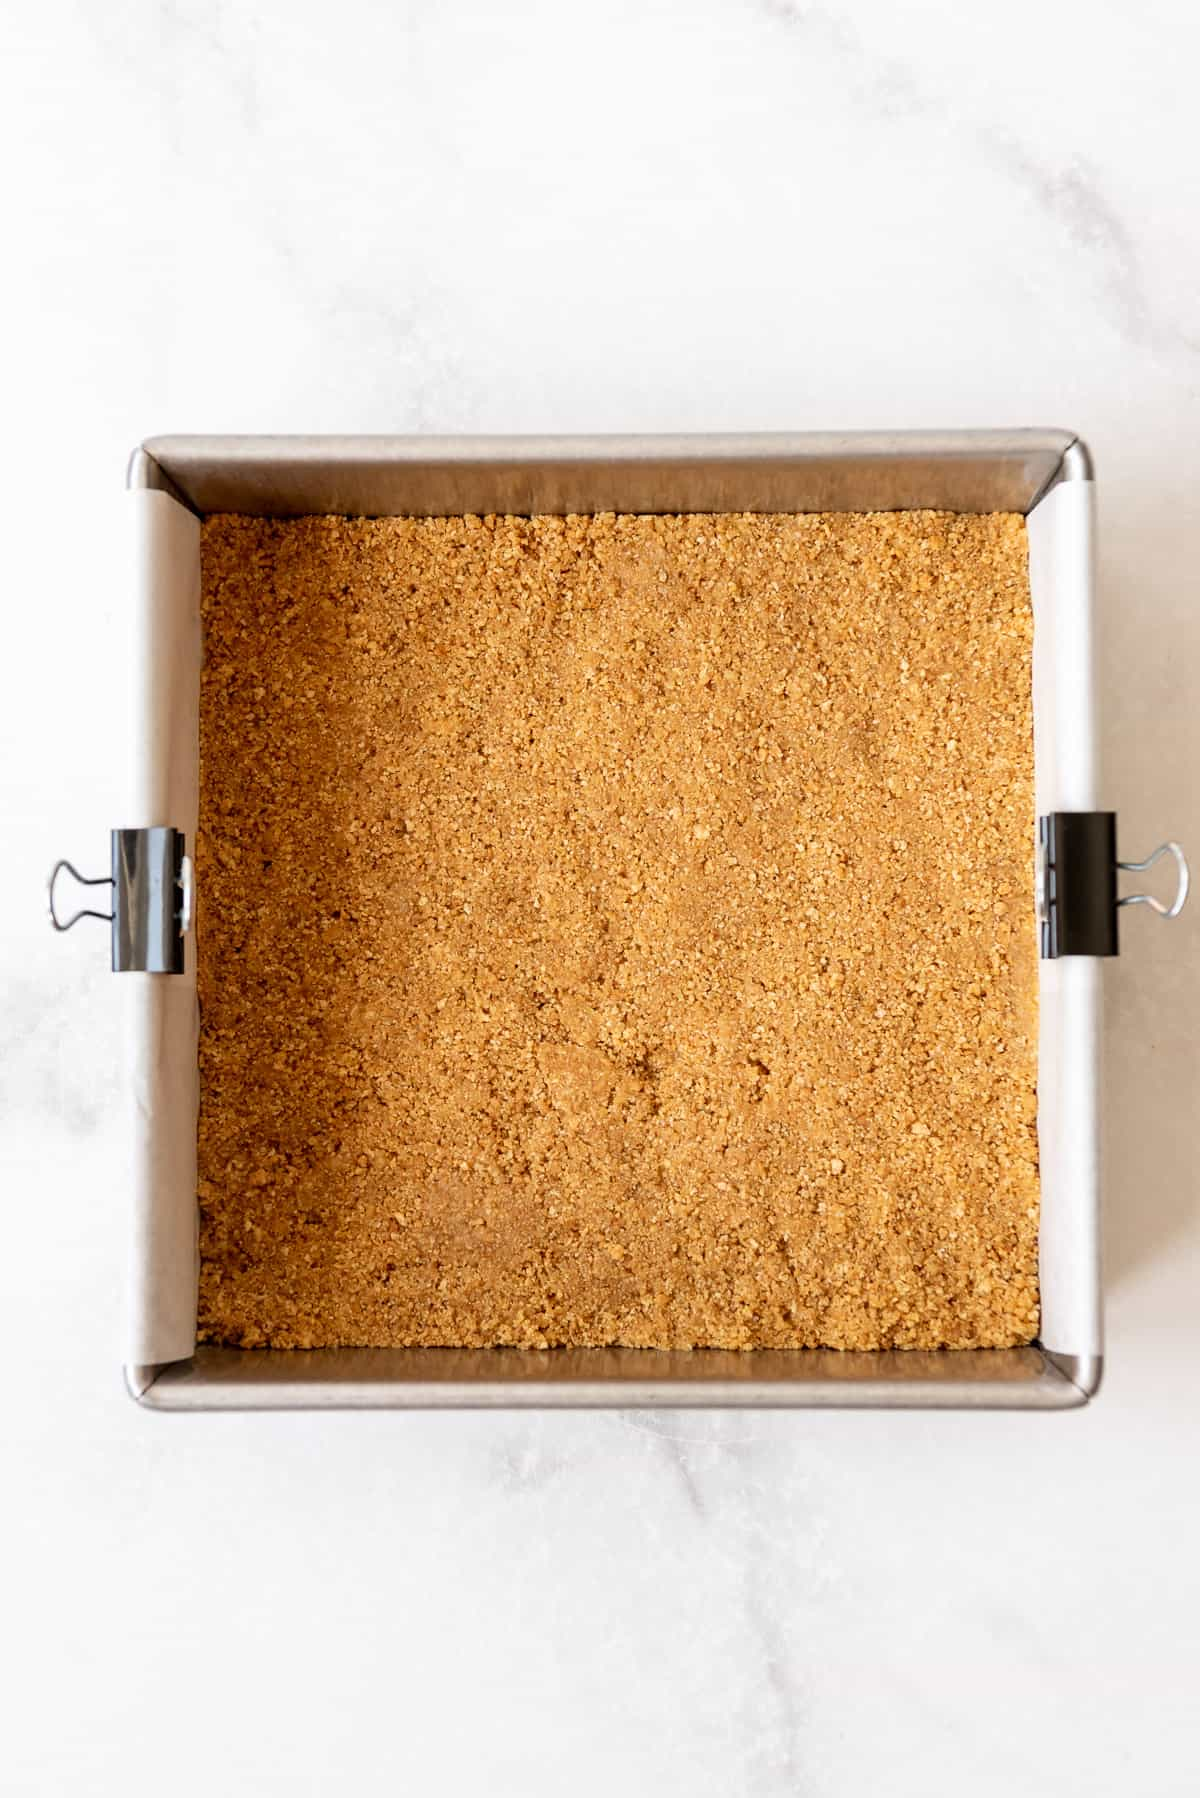 a graham cracker crust pressed into a square 8-inch pan.